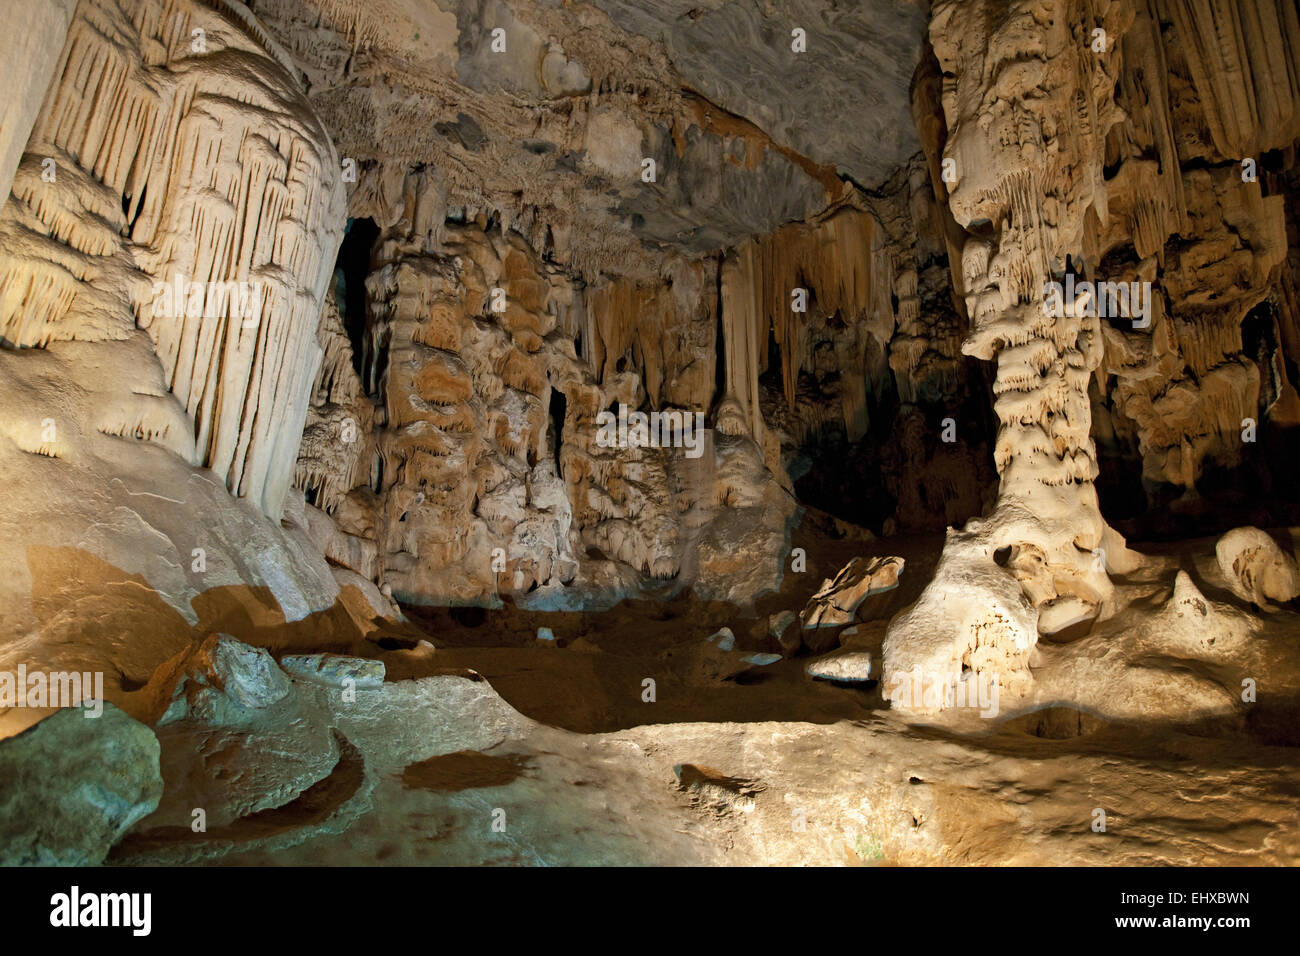 limestone caves coloring pages - photo#16